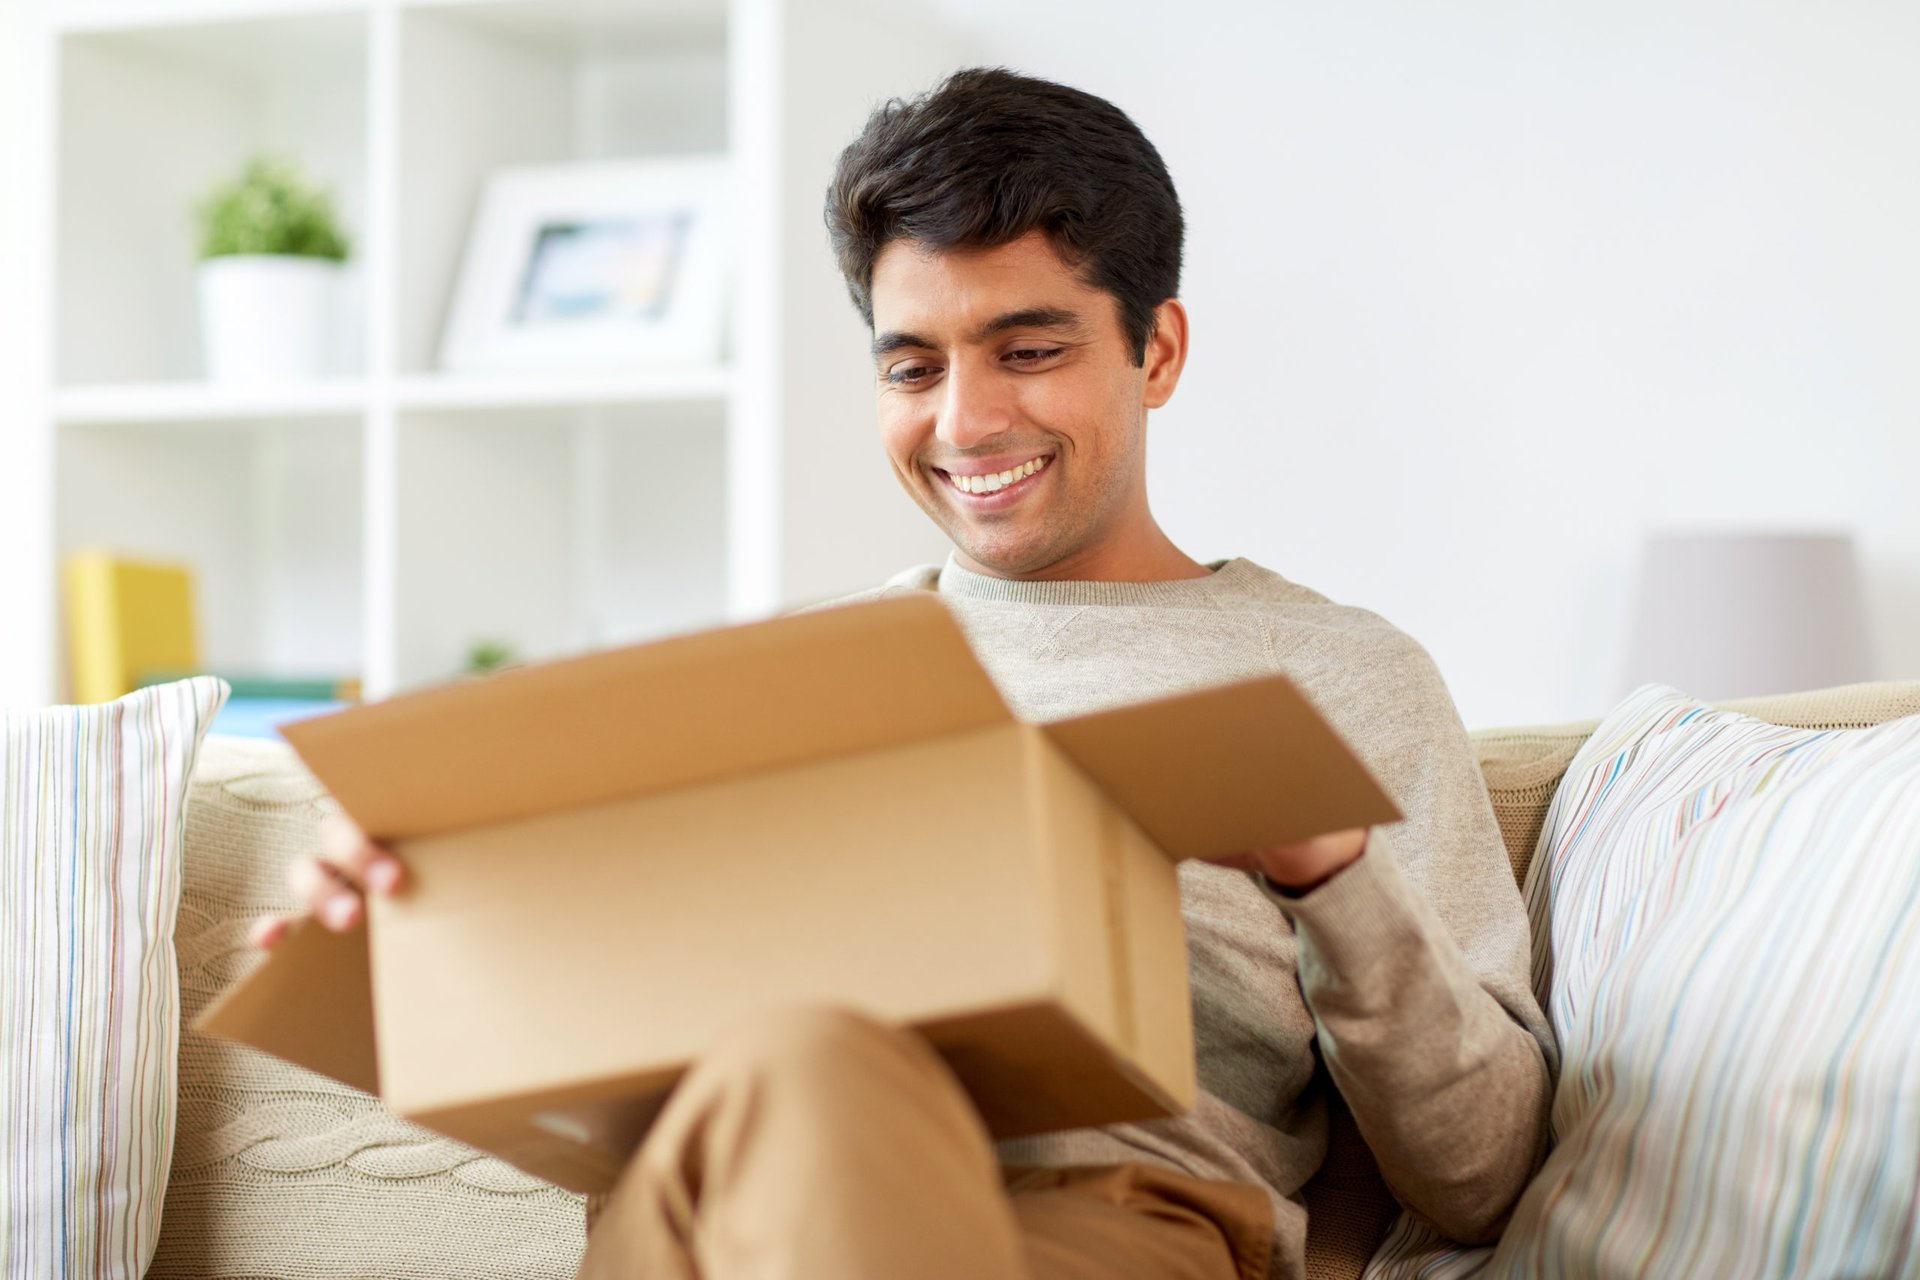 A happy man smiles while opening a package in a shipping box on his sofa